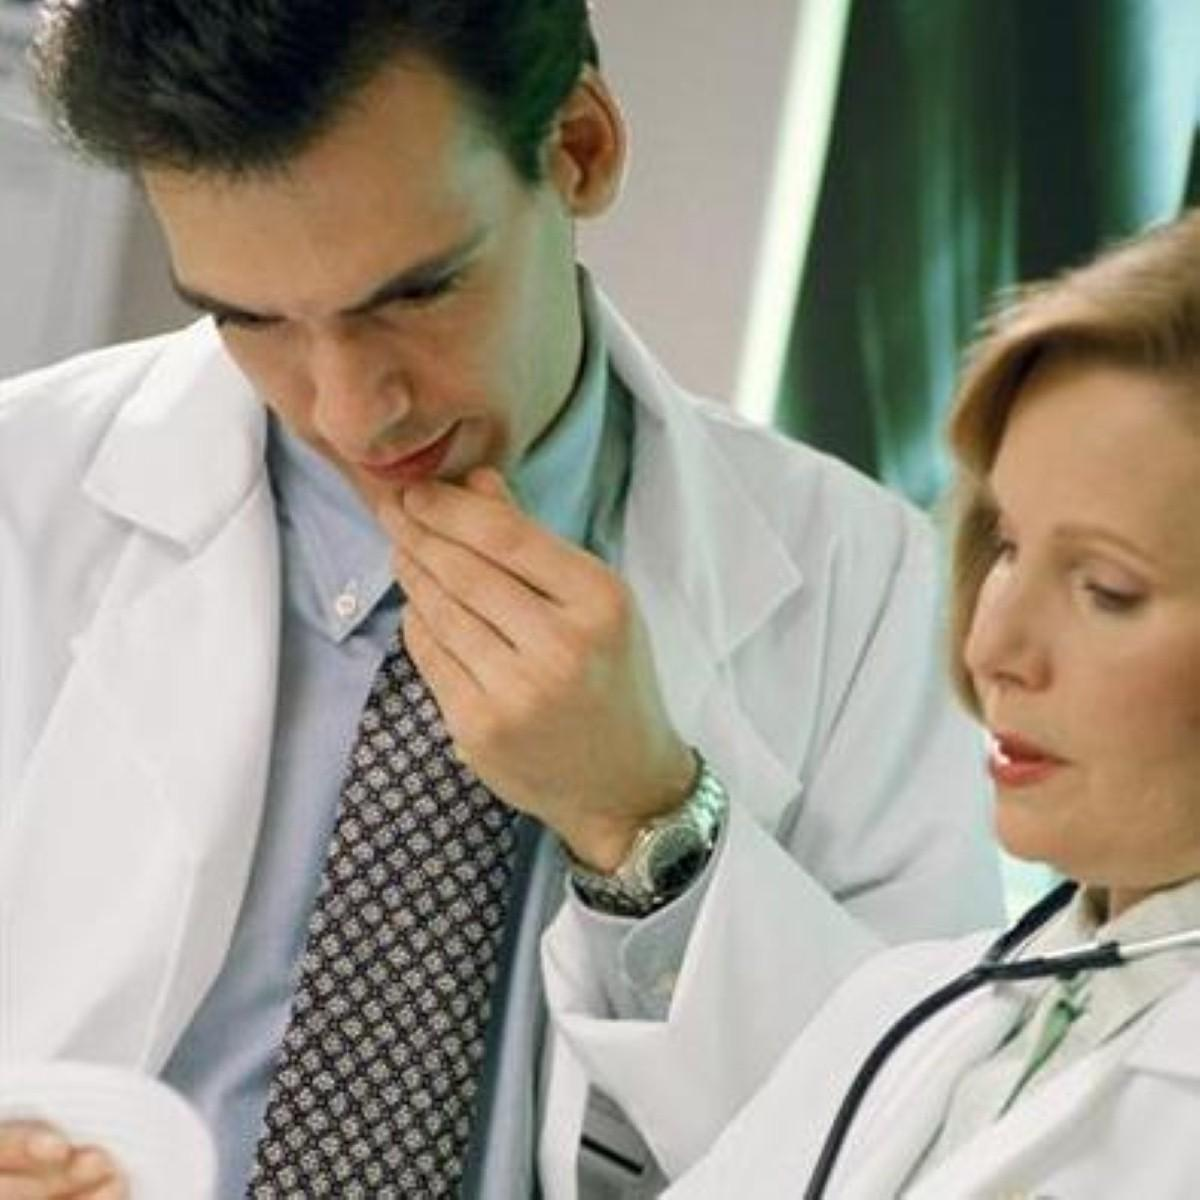 Heart attack risk 'more inherited than stroke'